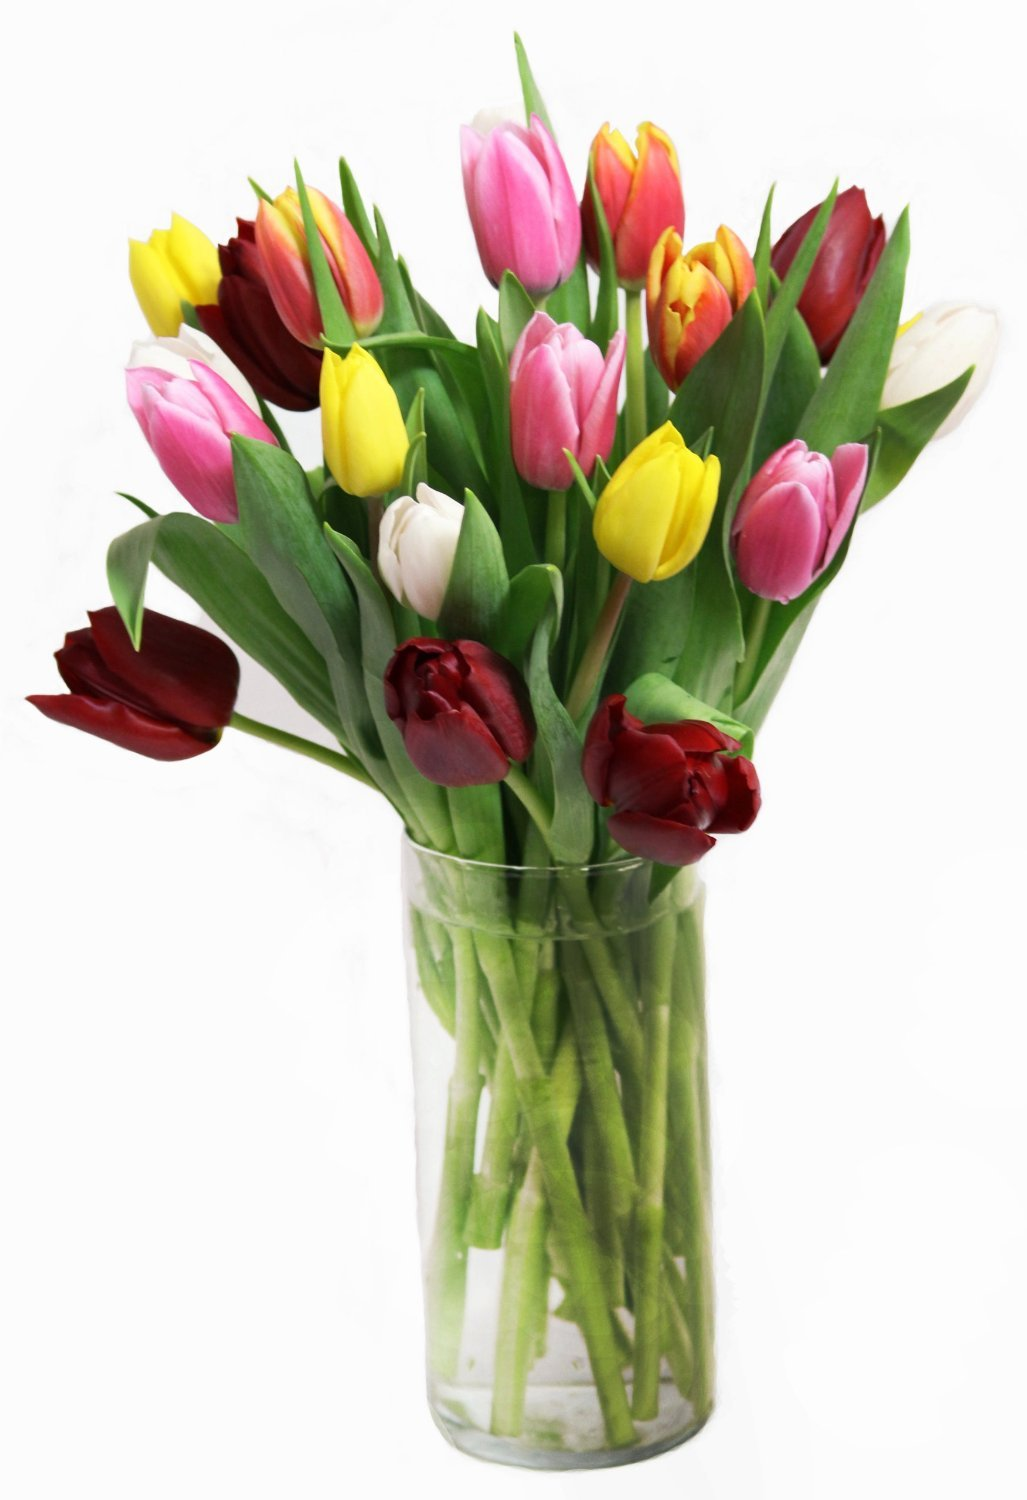 30 Stem Dare to Impress Fresh Cut Tulips